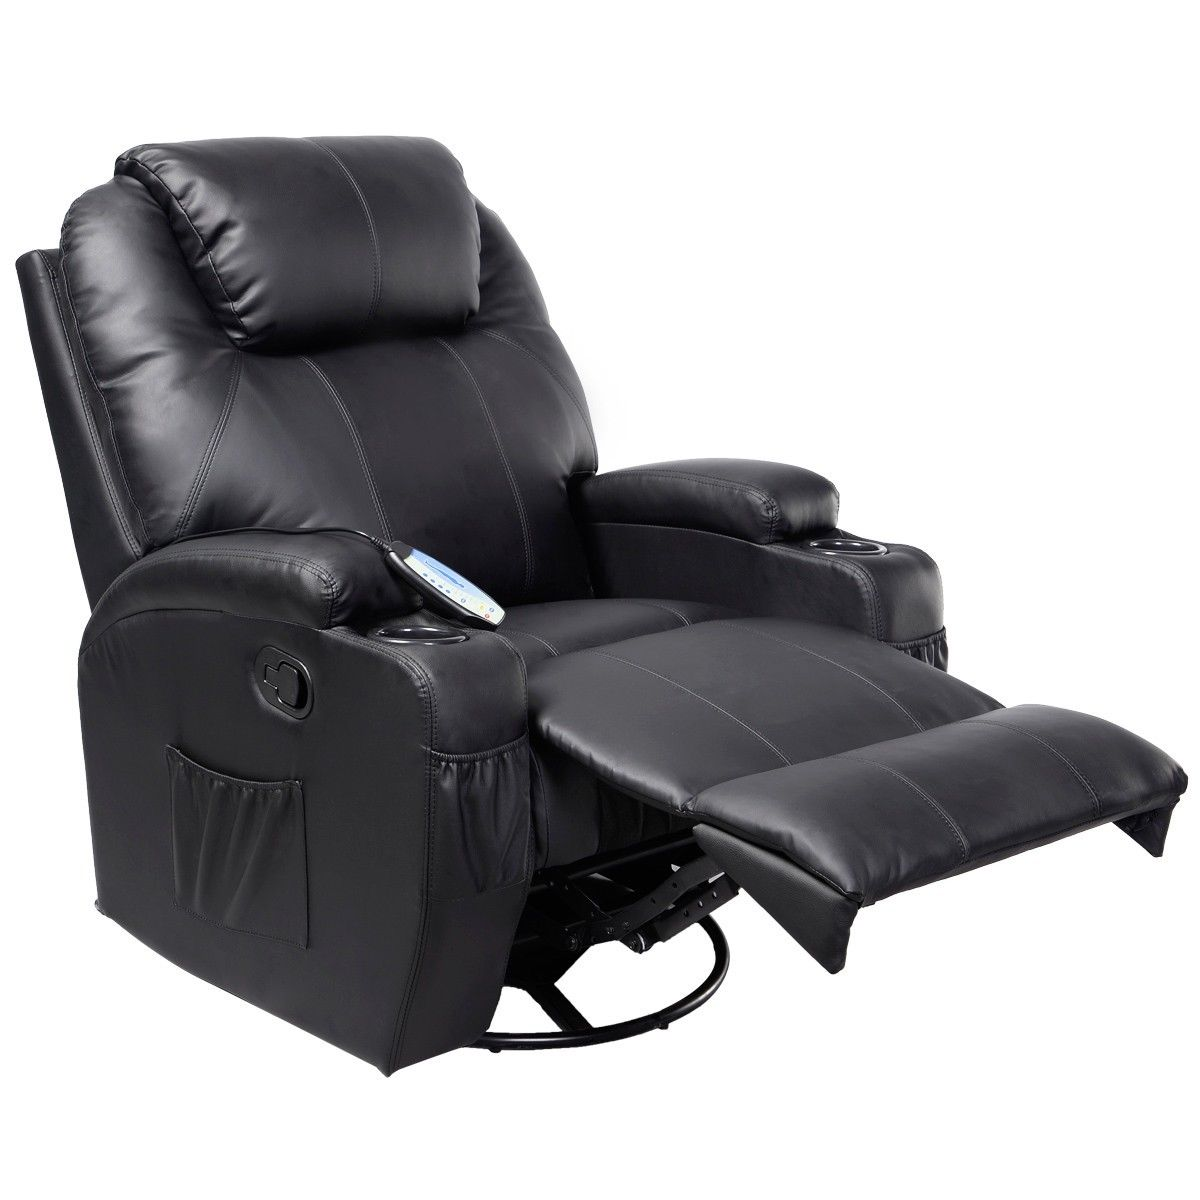 ergonomic chair lounge baby bouncy age giantex electric massage leather recliner sofa